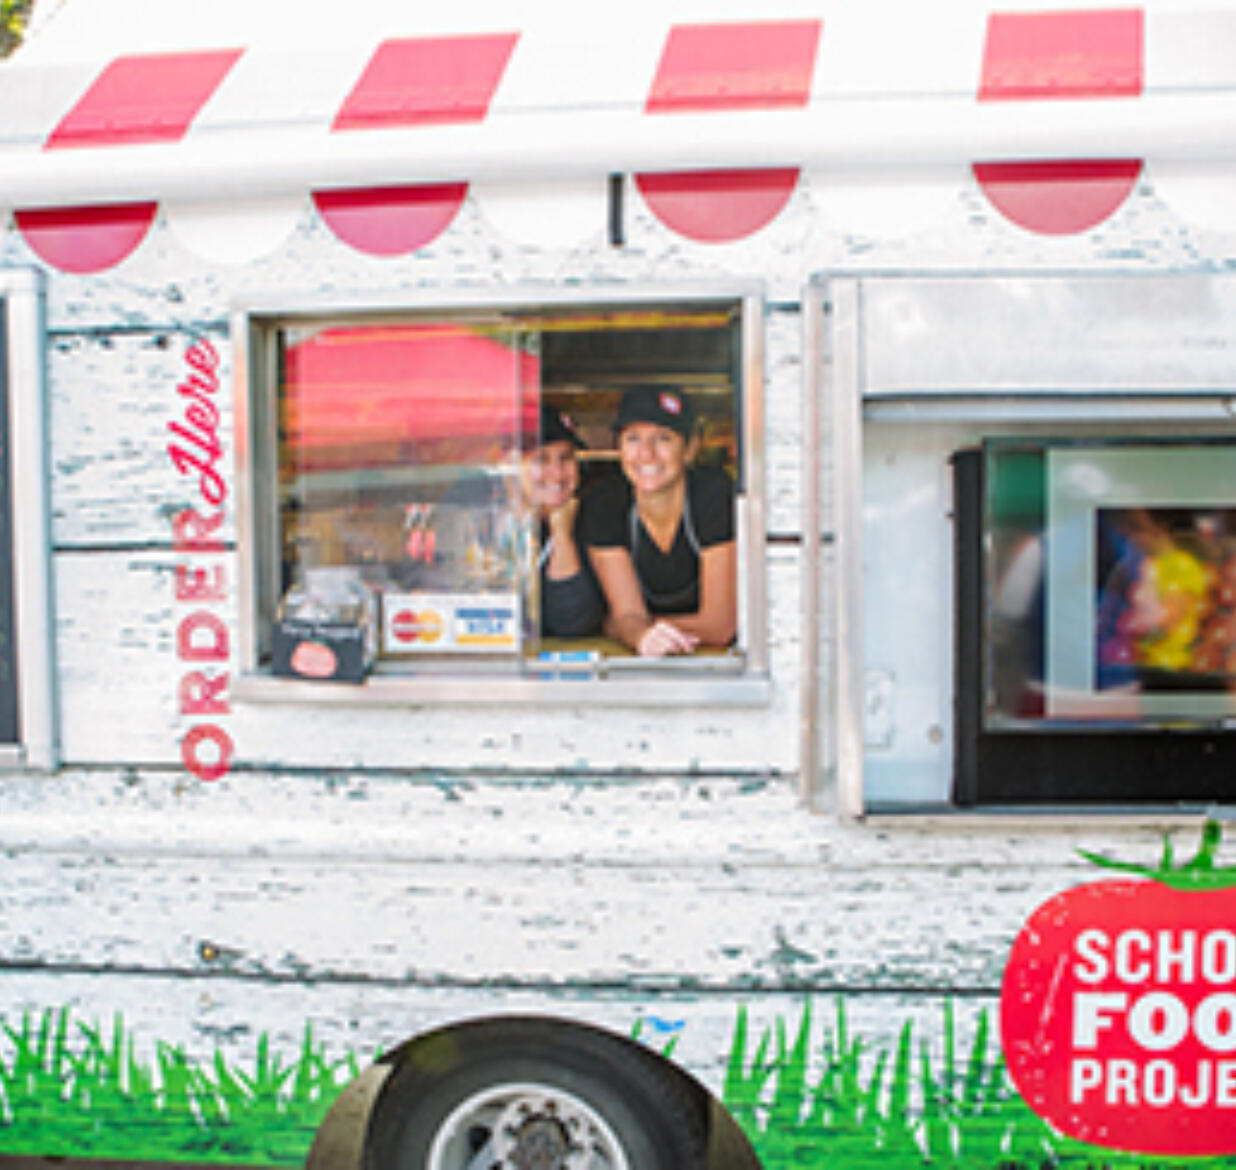 Why Have a School Food Truck?